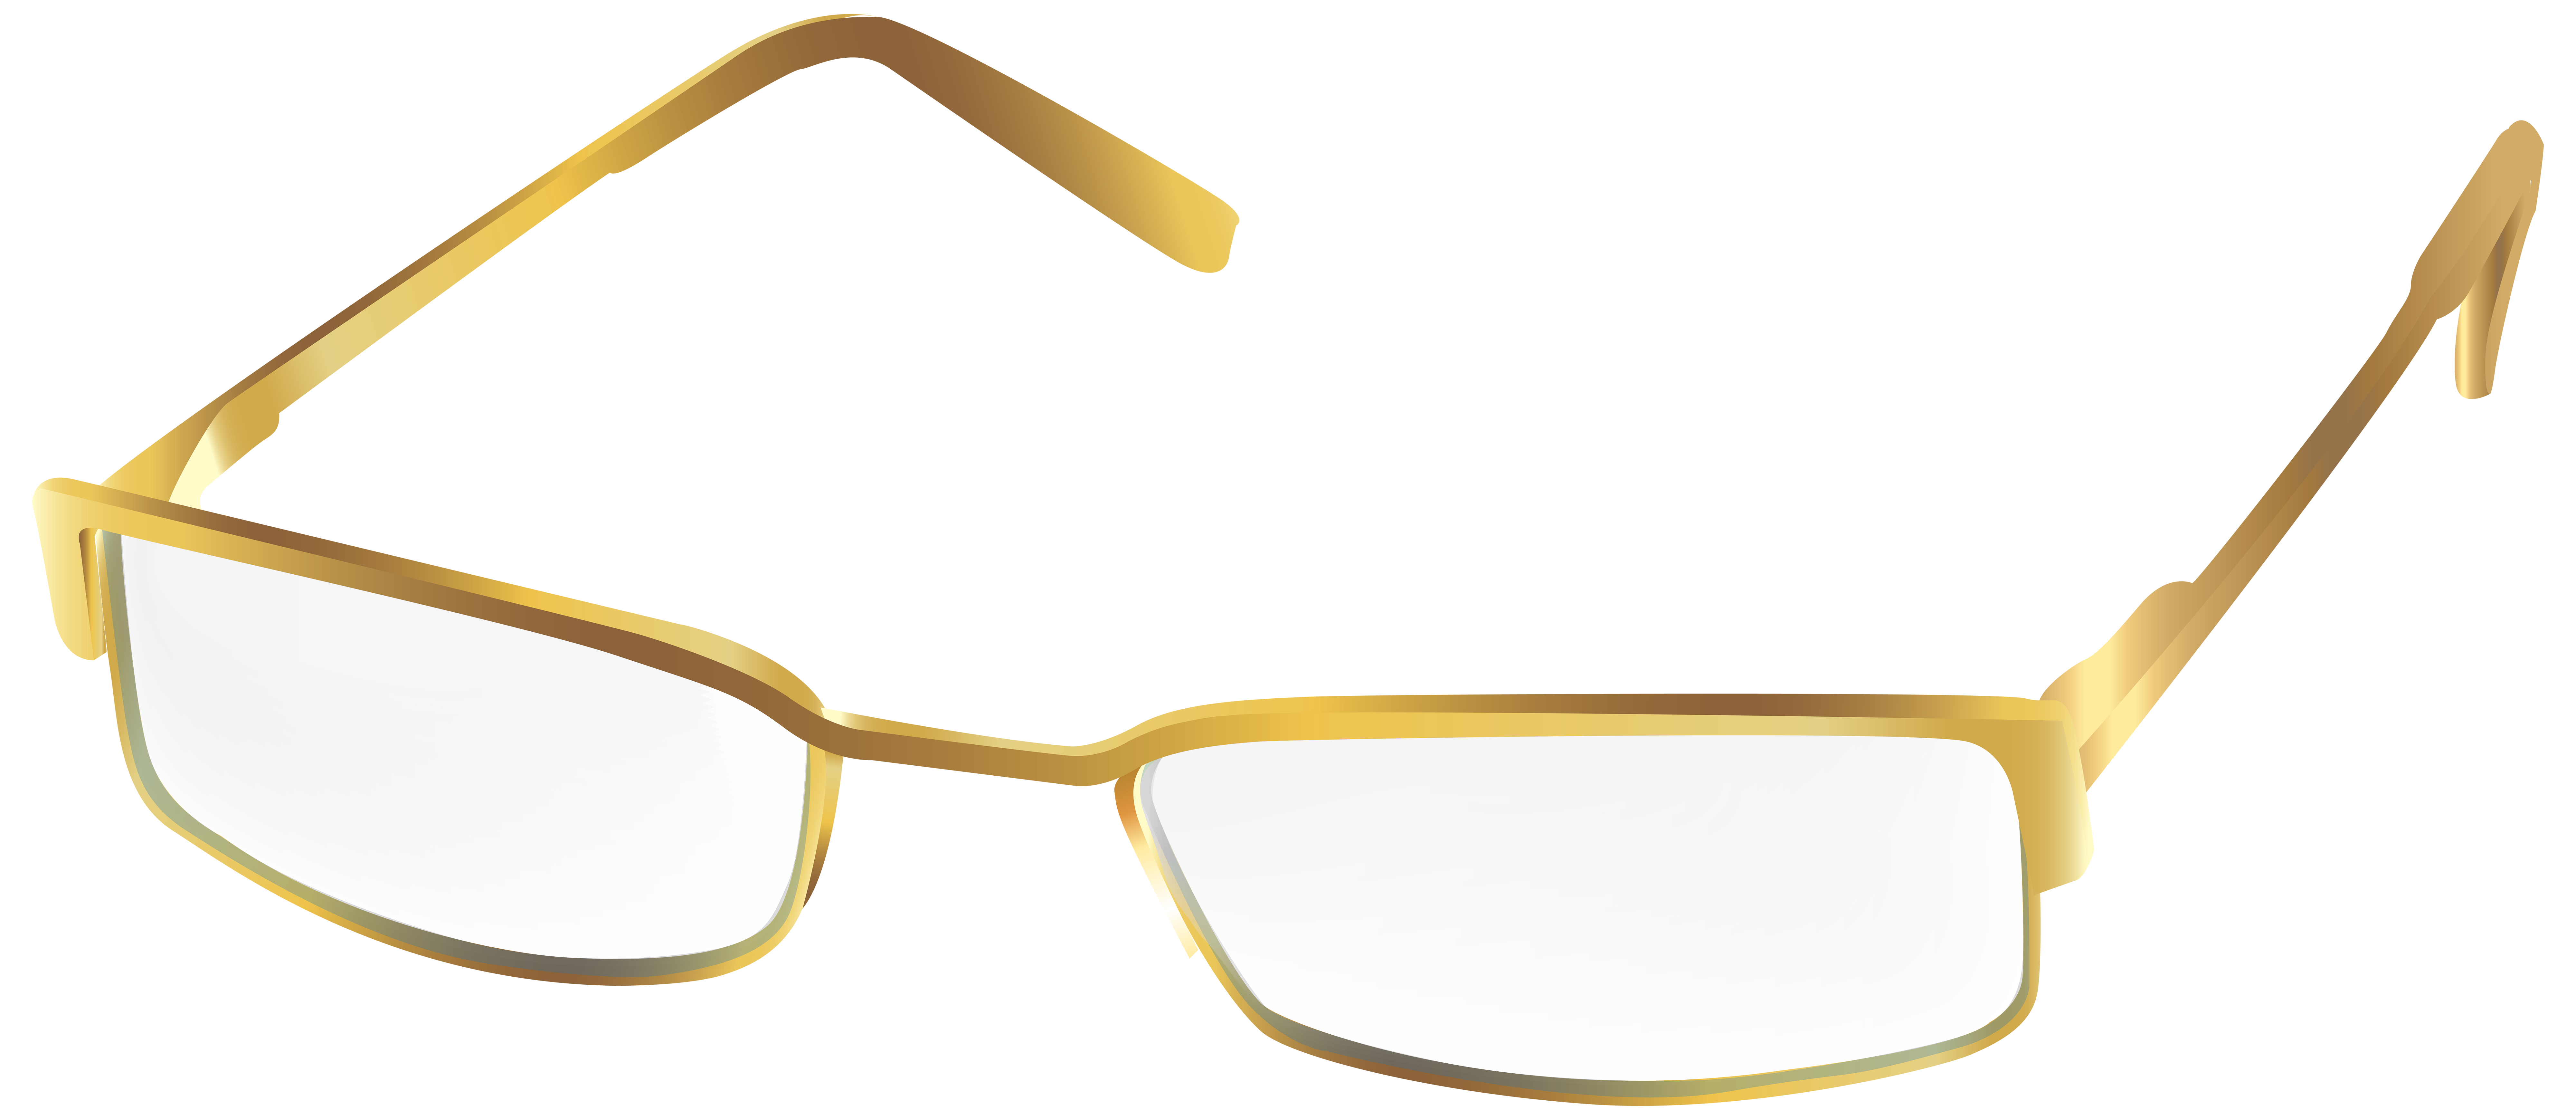 Clipart sunglasses spectacle frame. Gold glasses png transparent